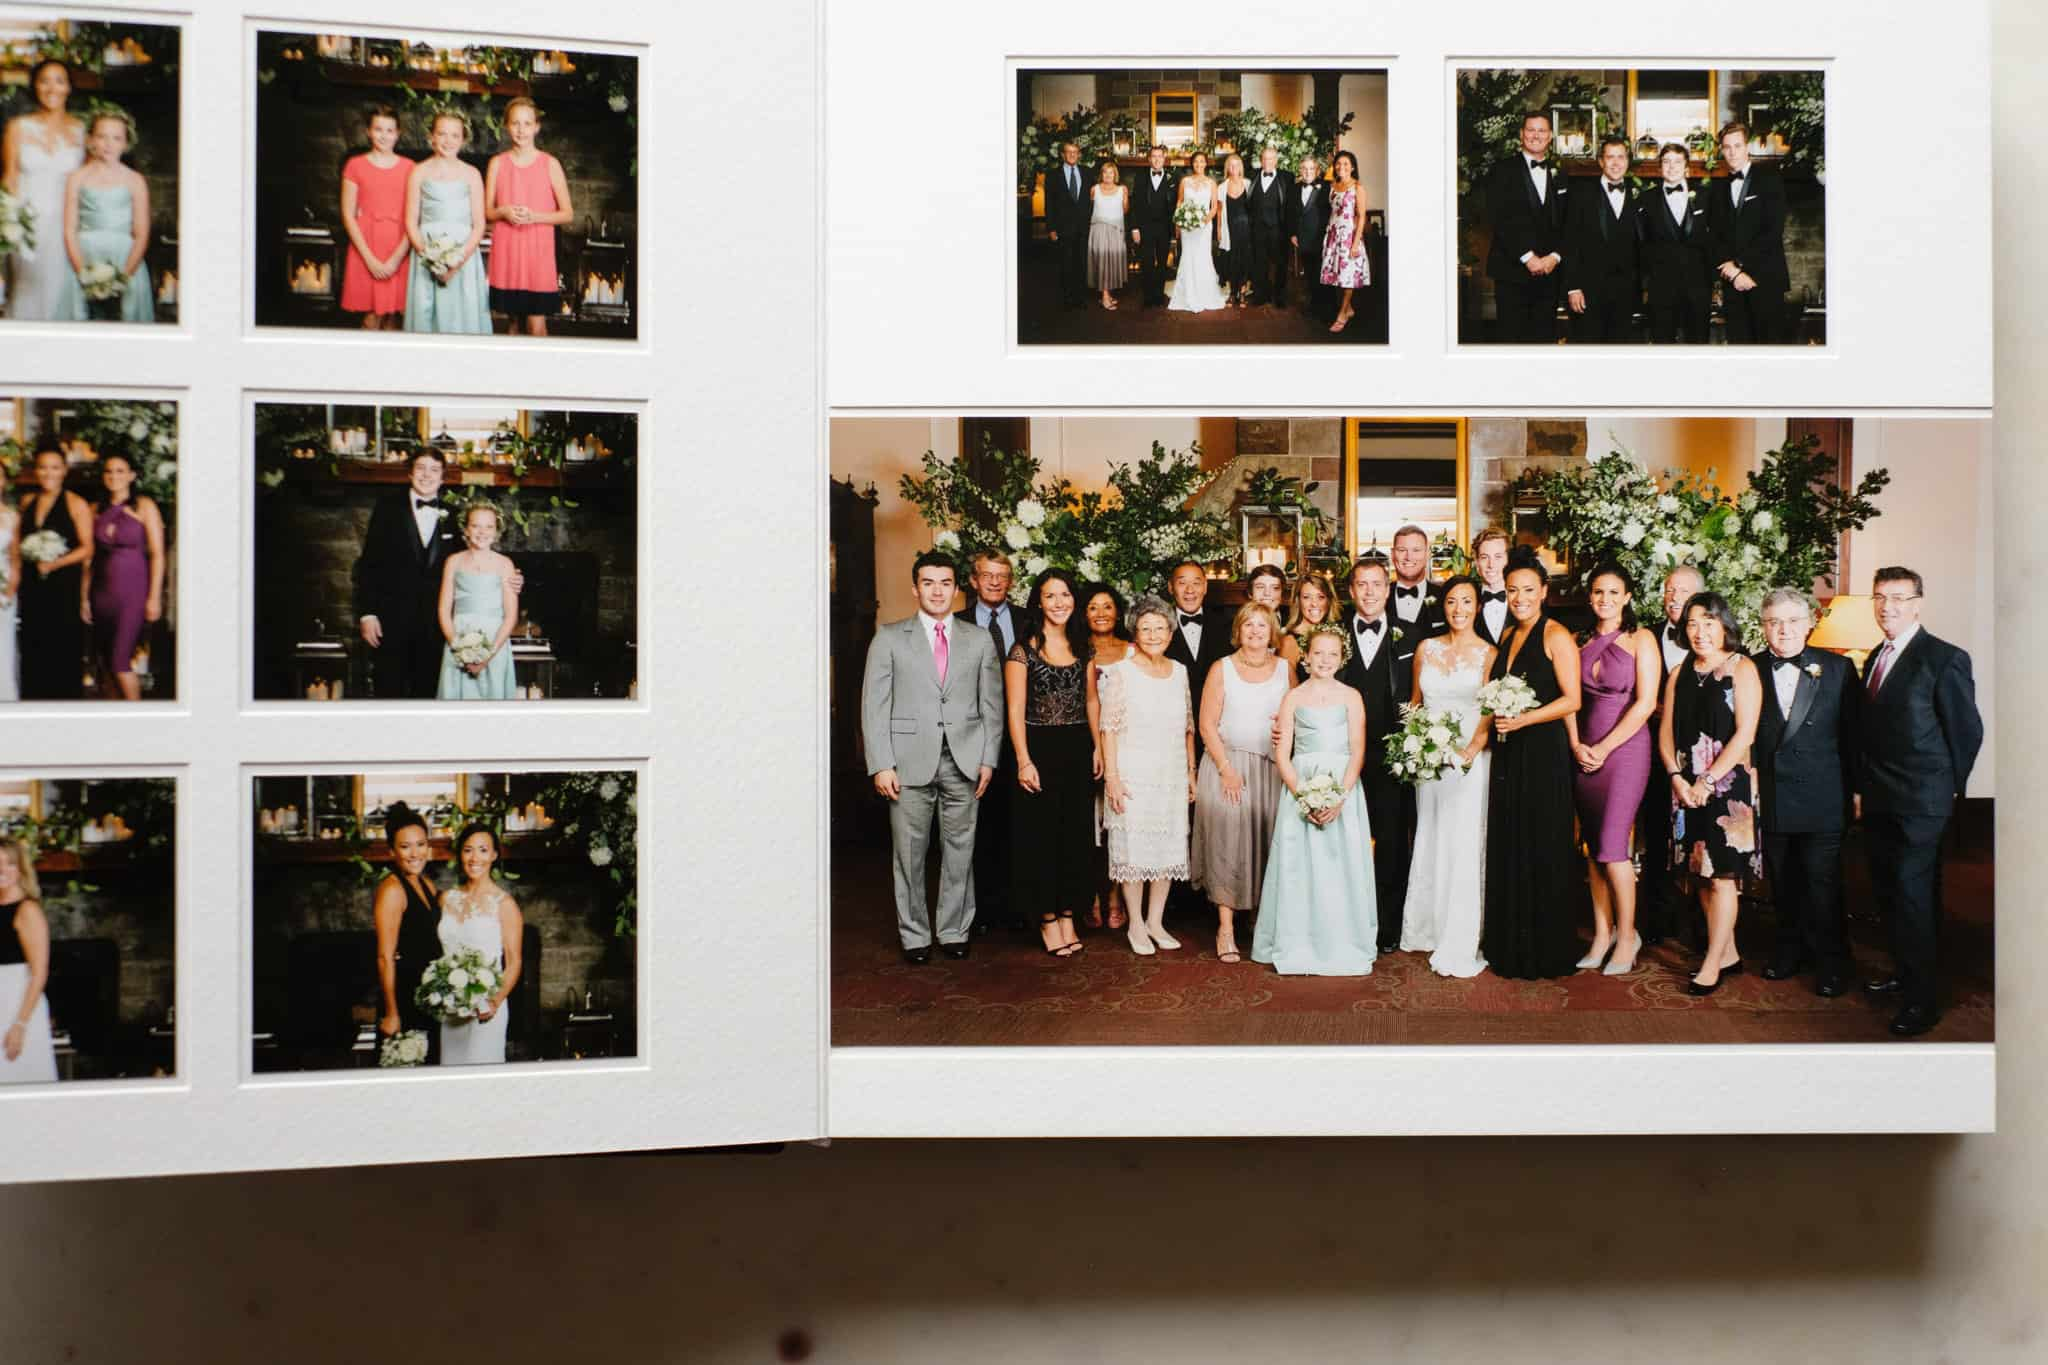 Queensberry duo wedding photo album with white pages and white mattes.